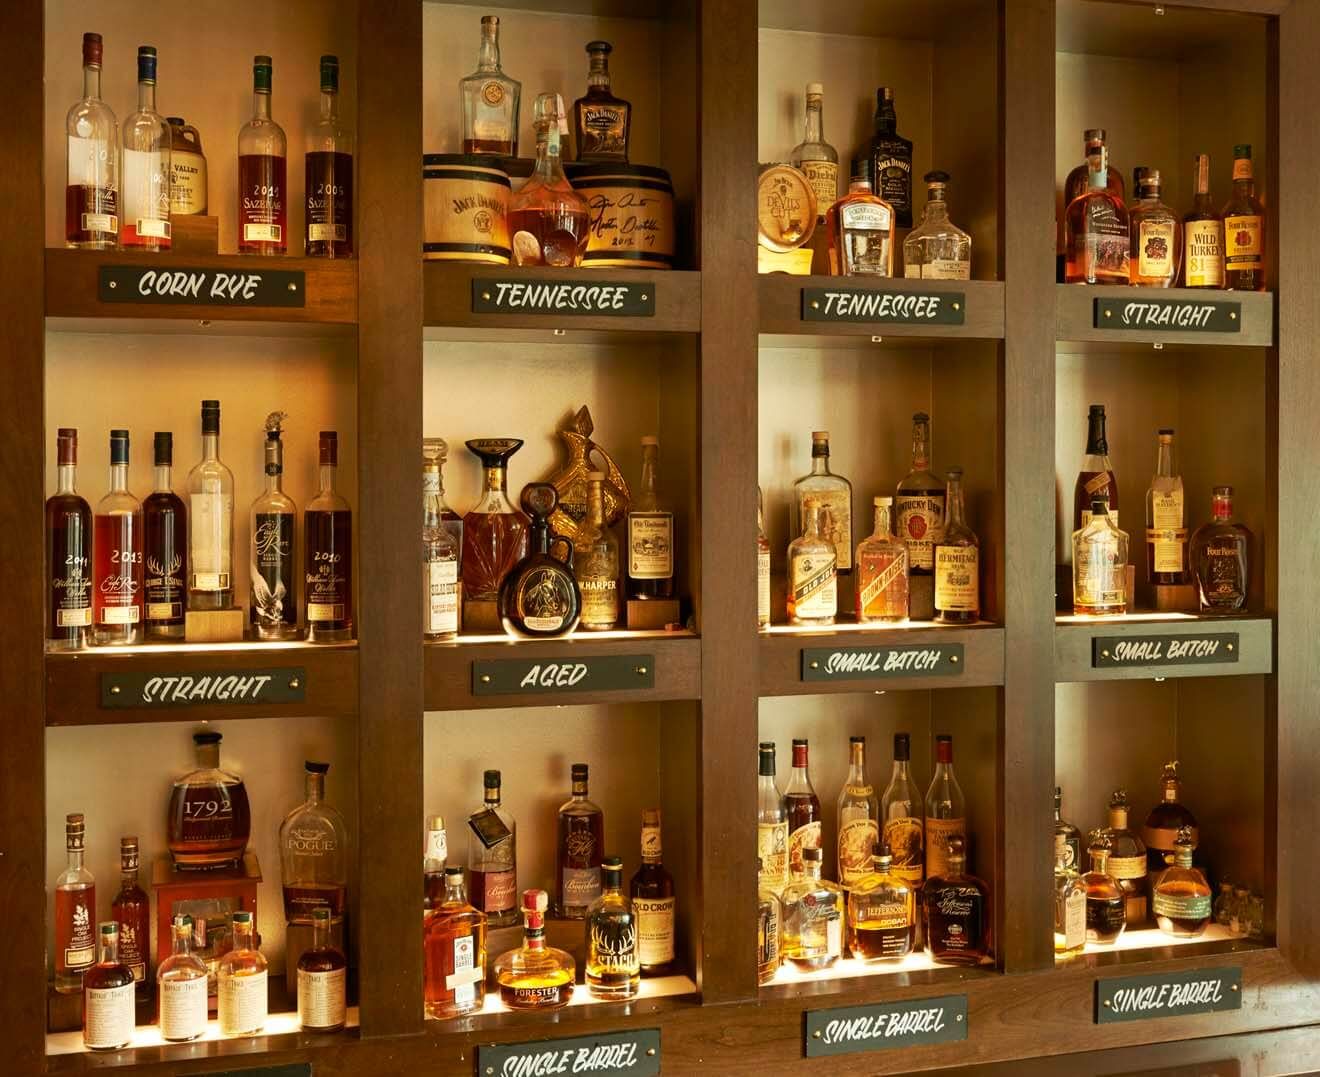 Bourbon Back Bar at JW Steakhouse